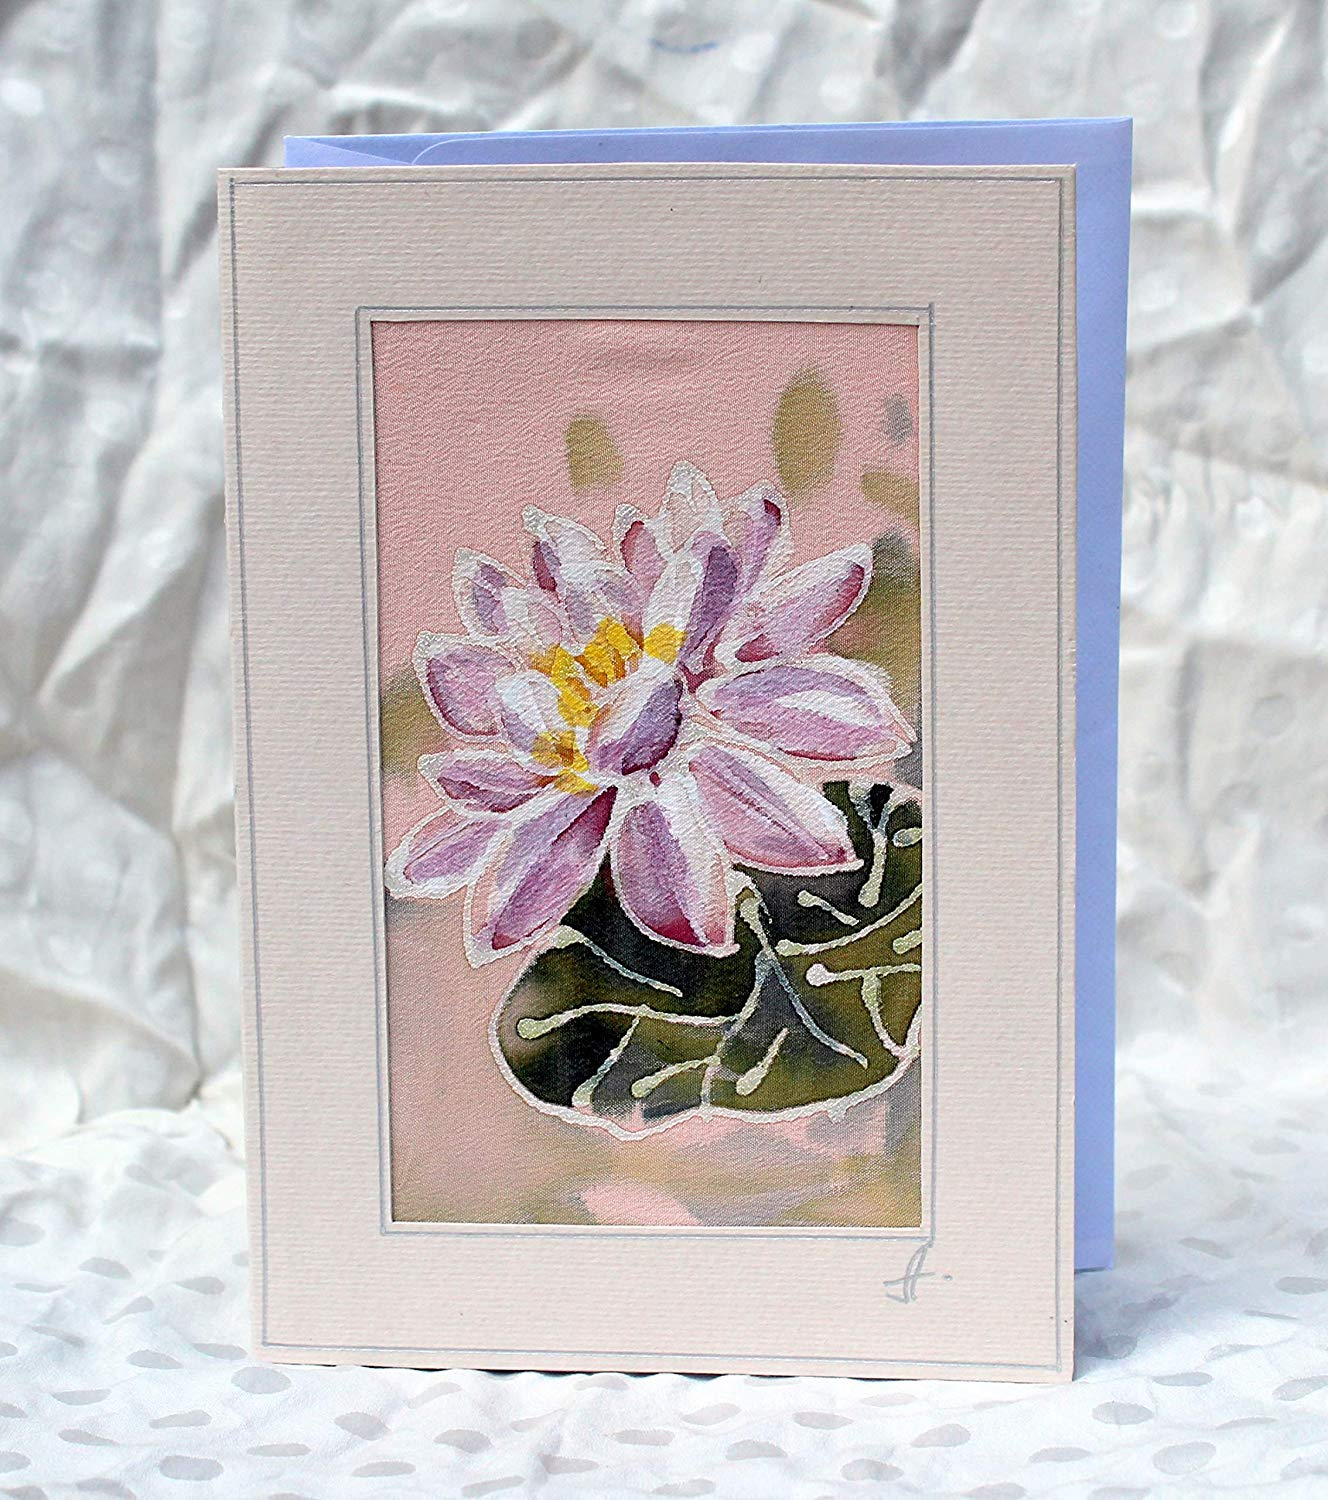 White Water Lily Silk Card,Hand Painted Silk Card,Water Lily Card,Flower Card,Beautiful Mother's Day Card, Pretty Mothers Day Card, Mothers Day Gift.